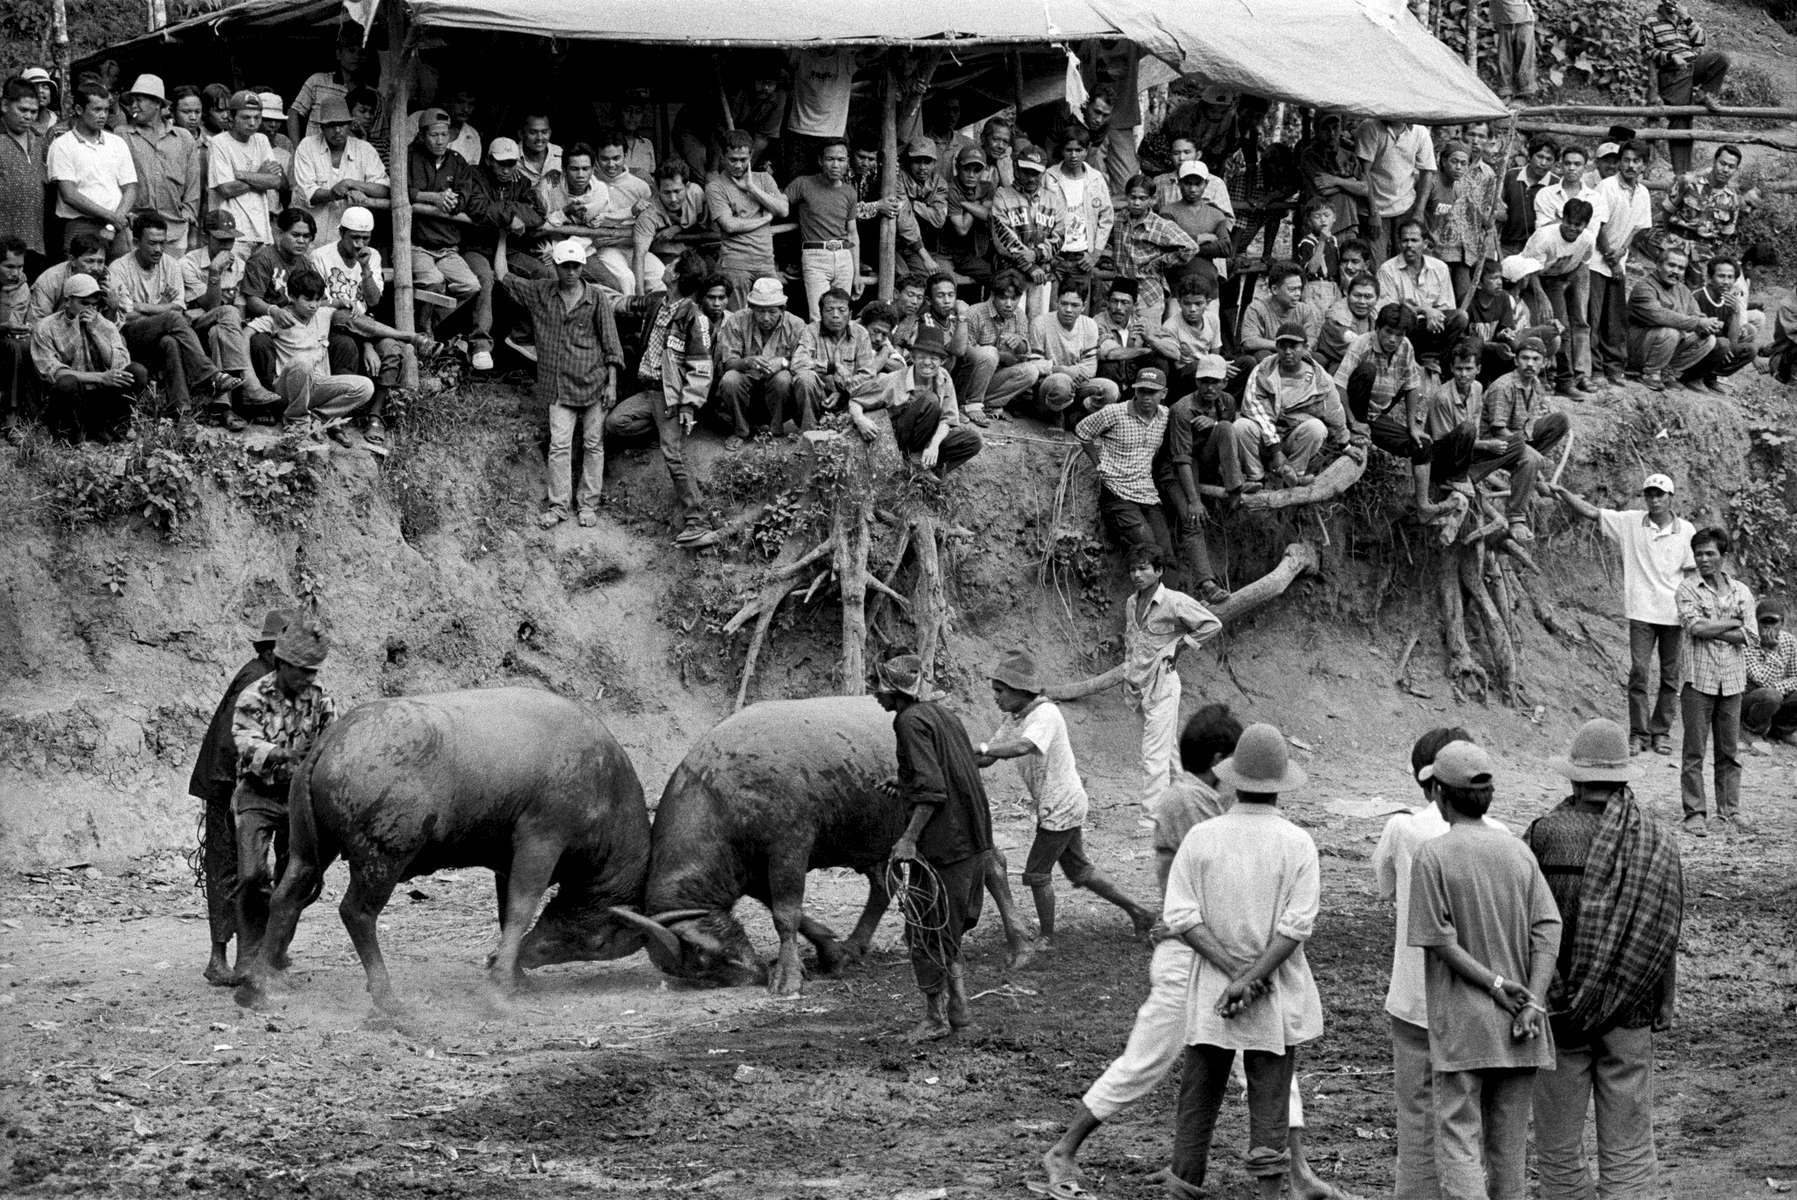 Buffalo fights in Sikabu, Central Sumatra, Indonesia 2003